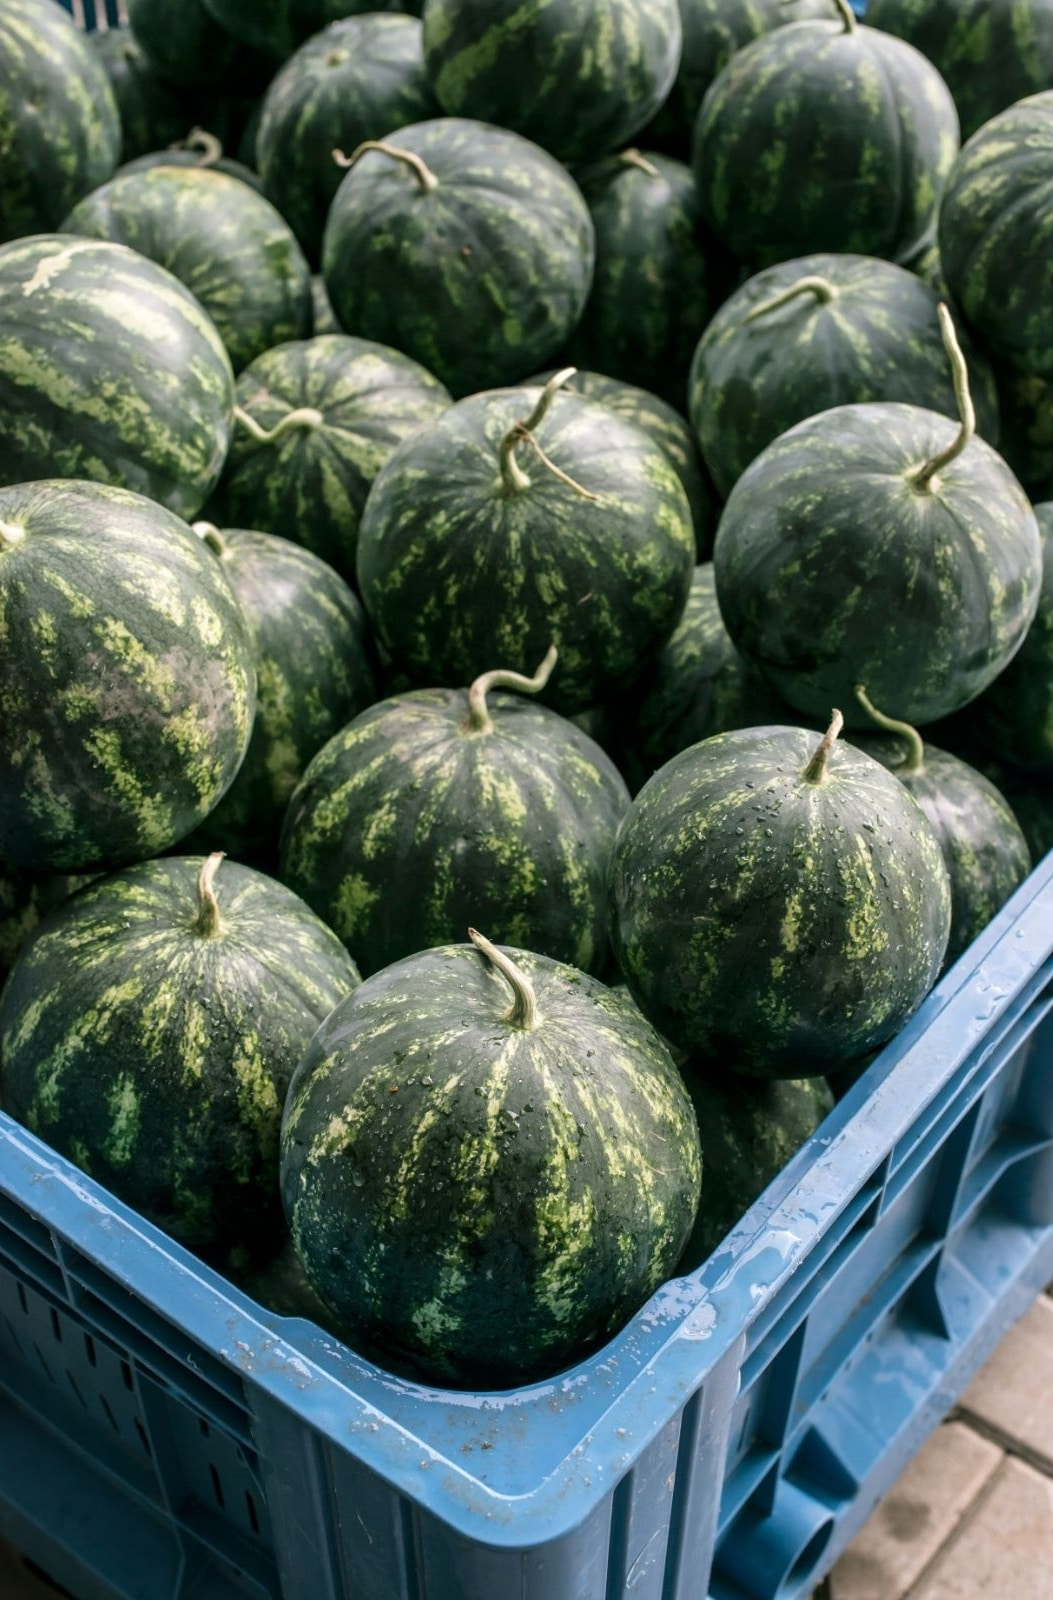 watermelons in a blue crate